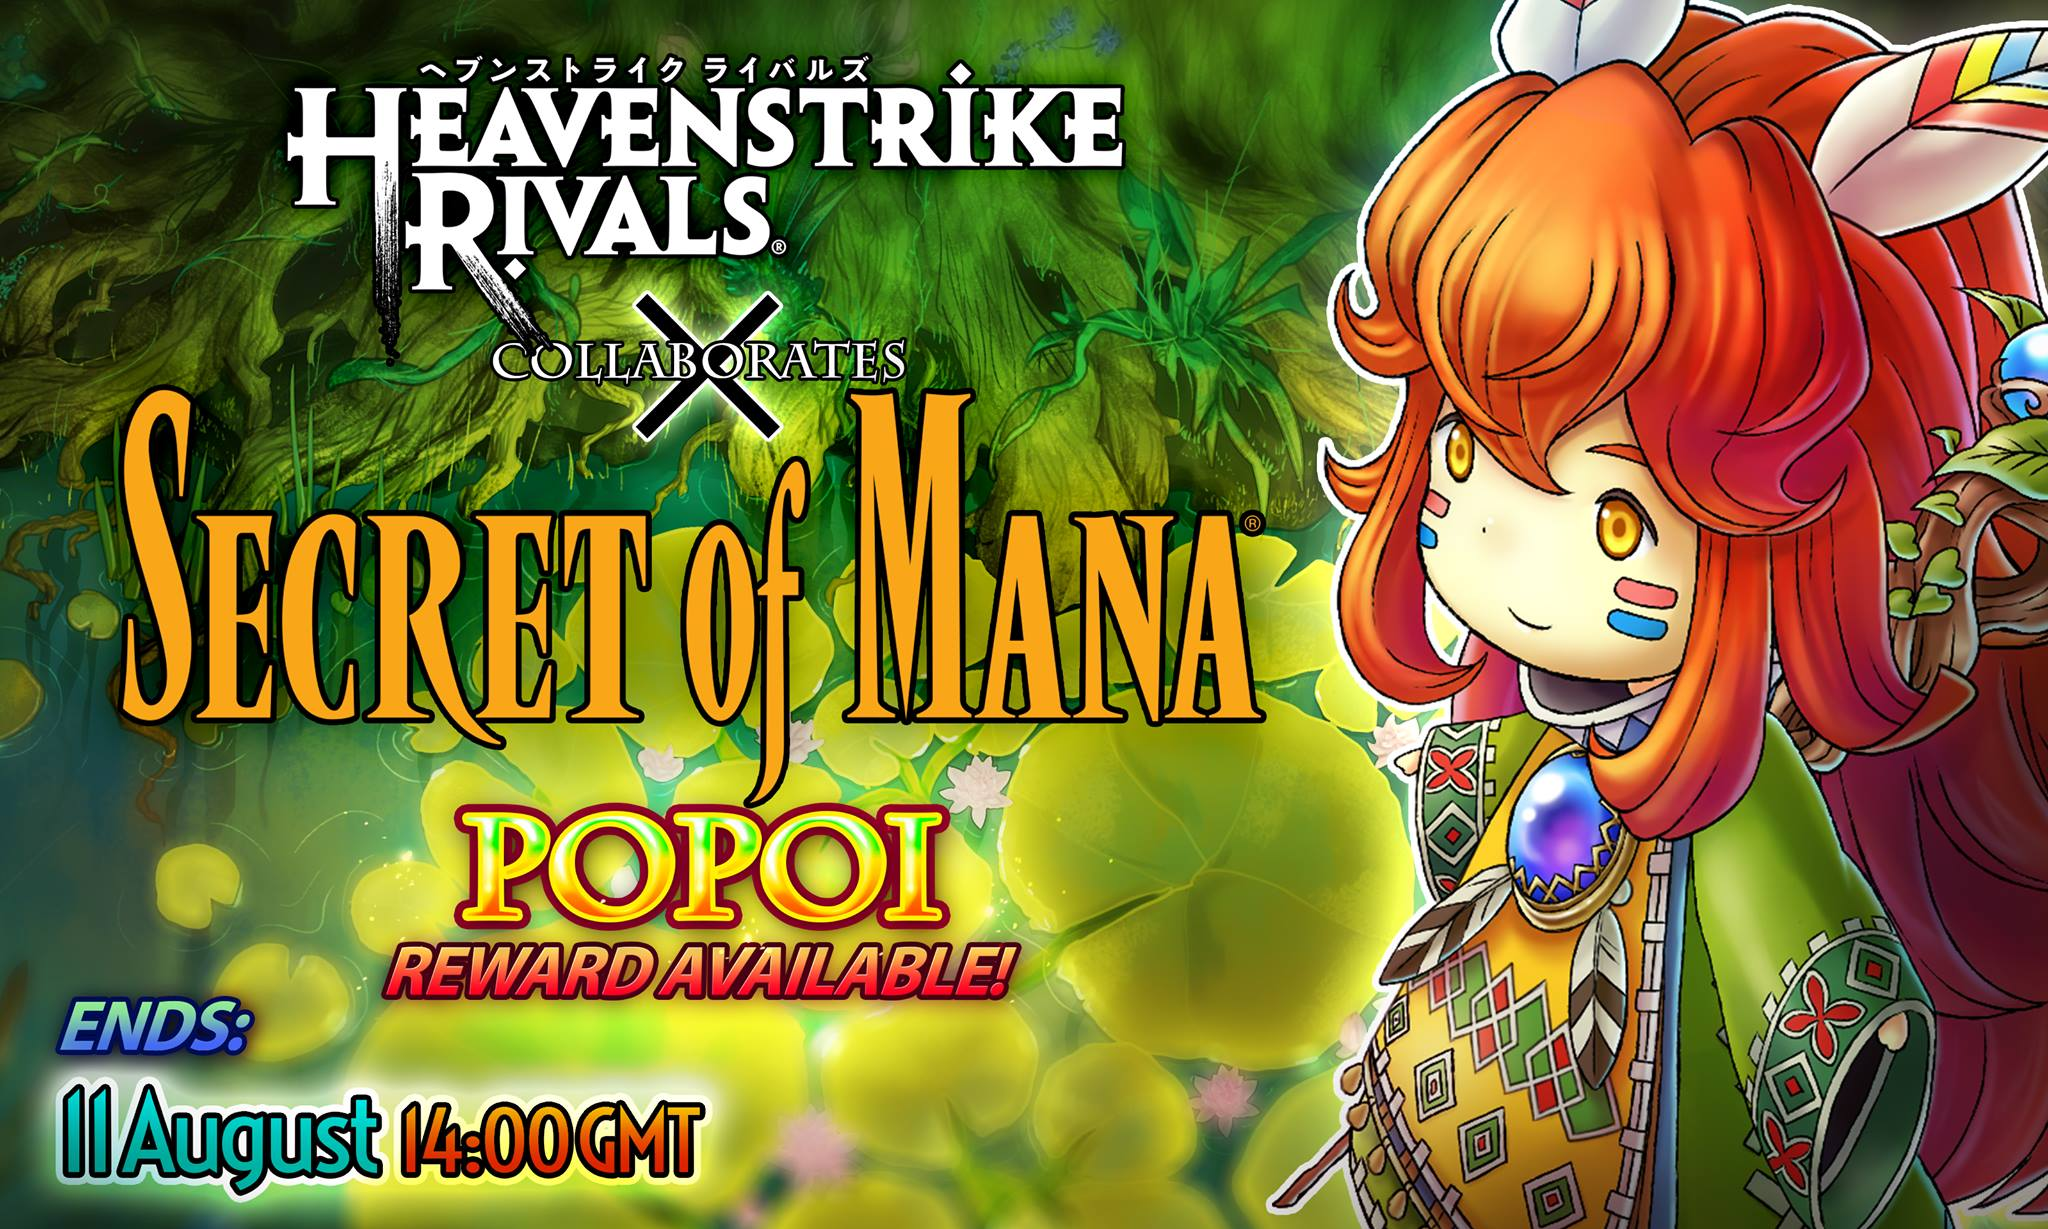 New Heavenstrike Rivals crossover event lets you unlock Secret of Mana characters